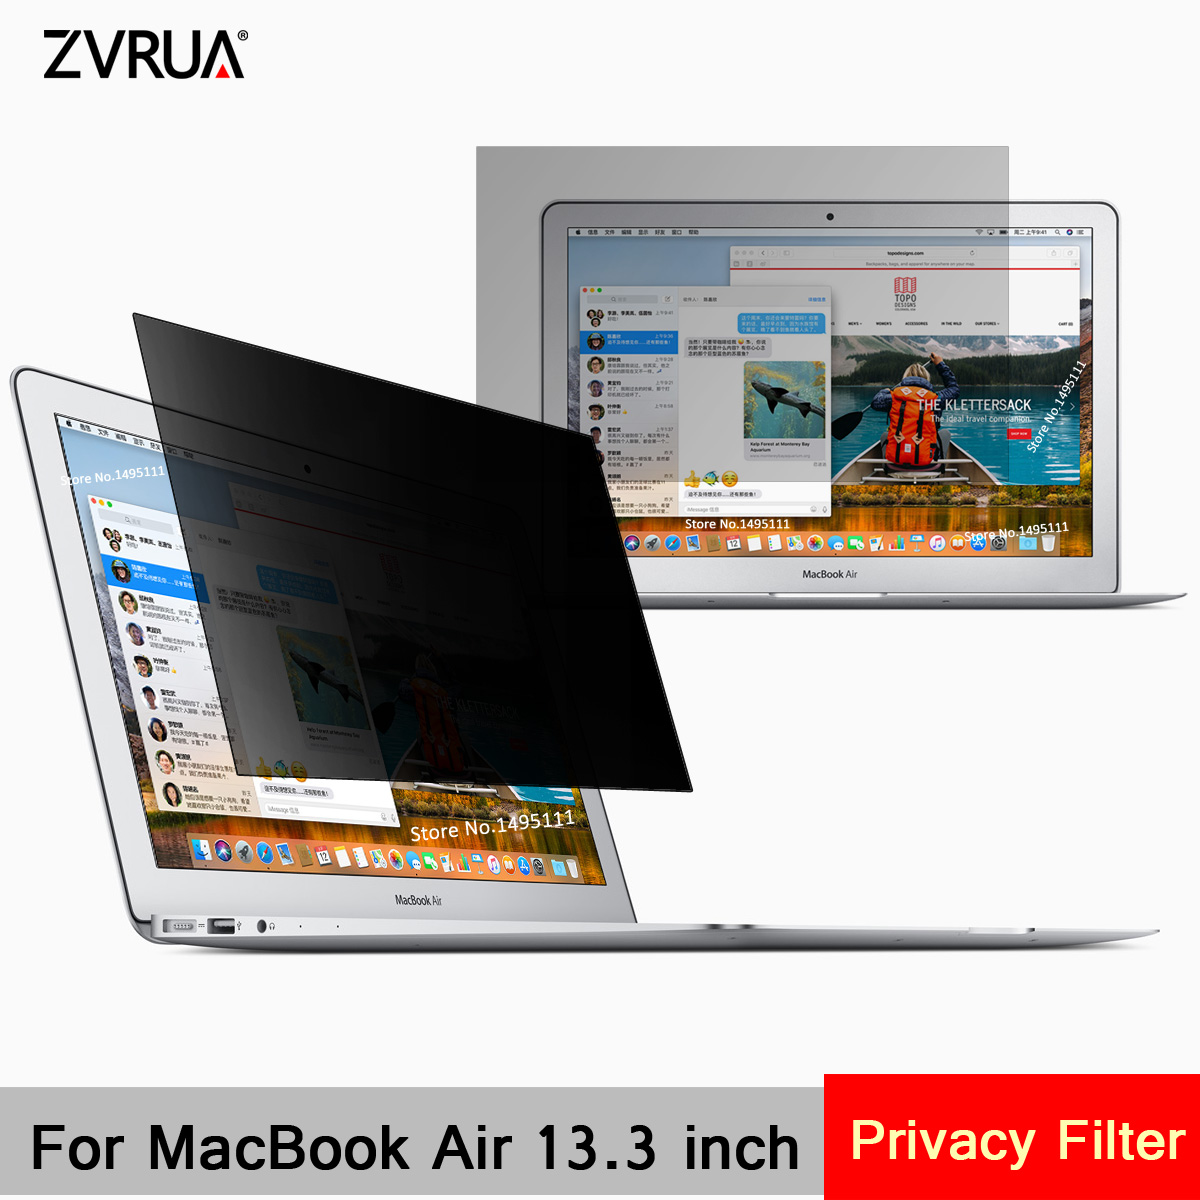 For Apple MacBook Air 13.3 inch (286mm*179mm) Privacy Filter Laptop Notebook Anti-glare  ...